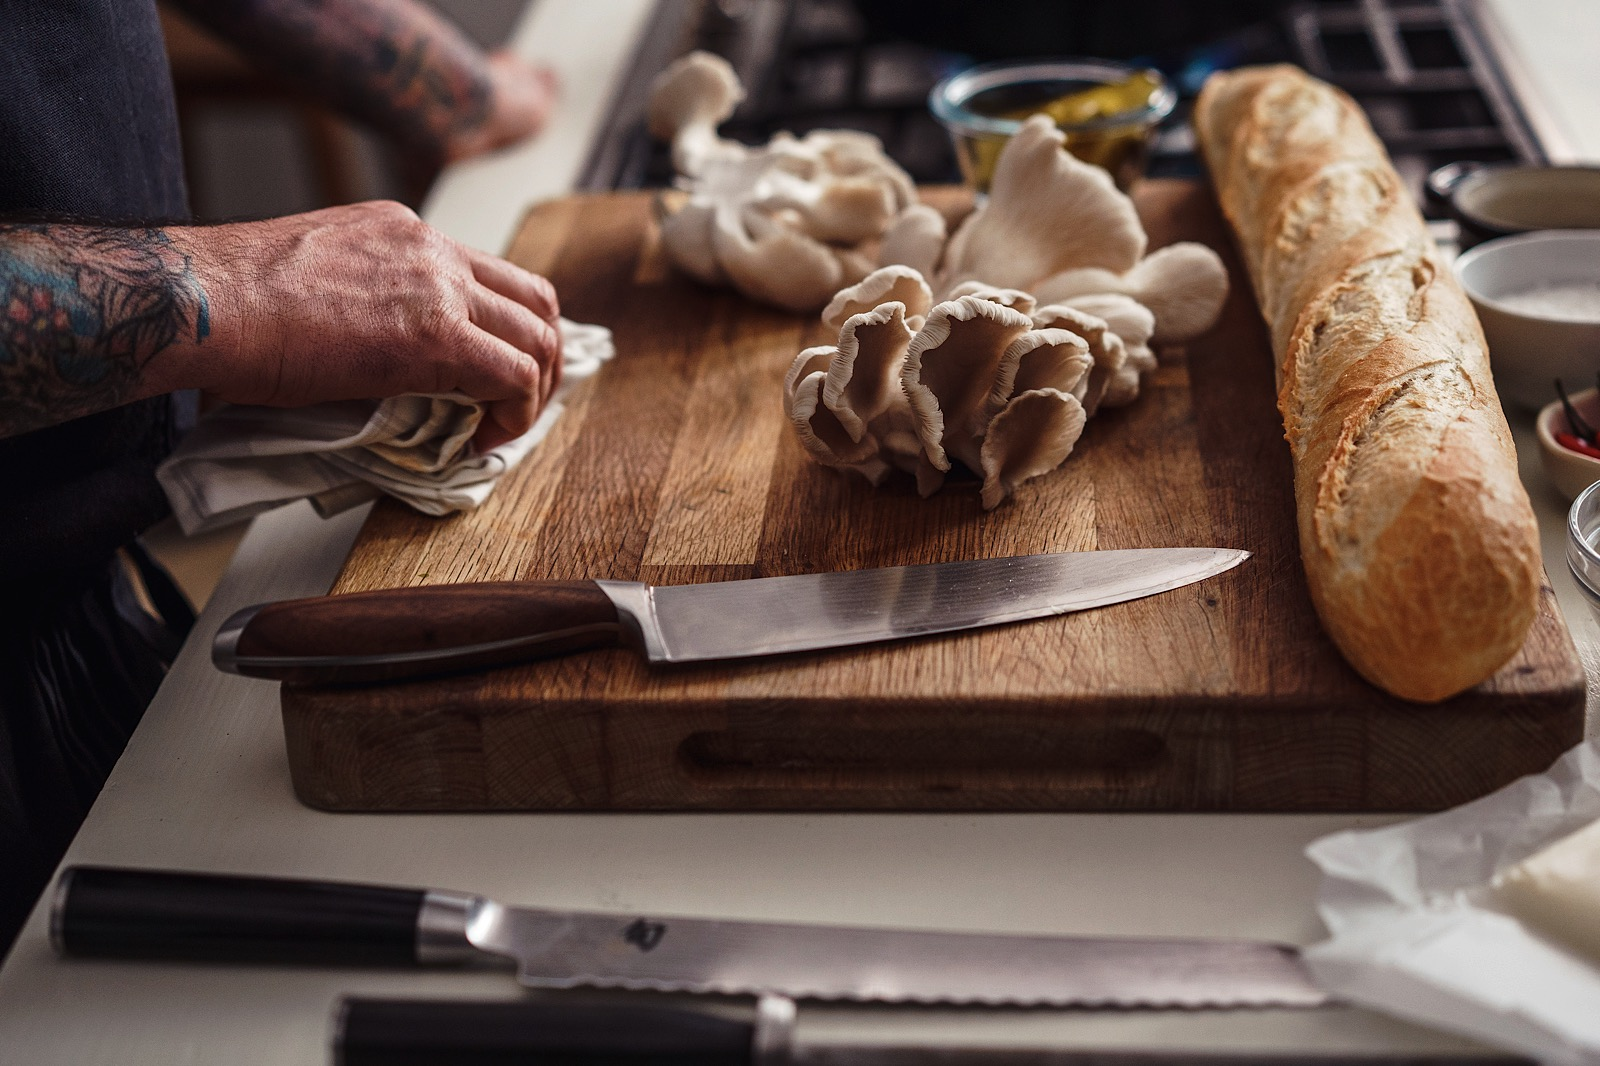 London Food Photo showing mushrooms and baguette on chopping board with knife